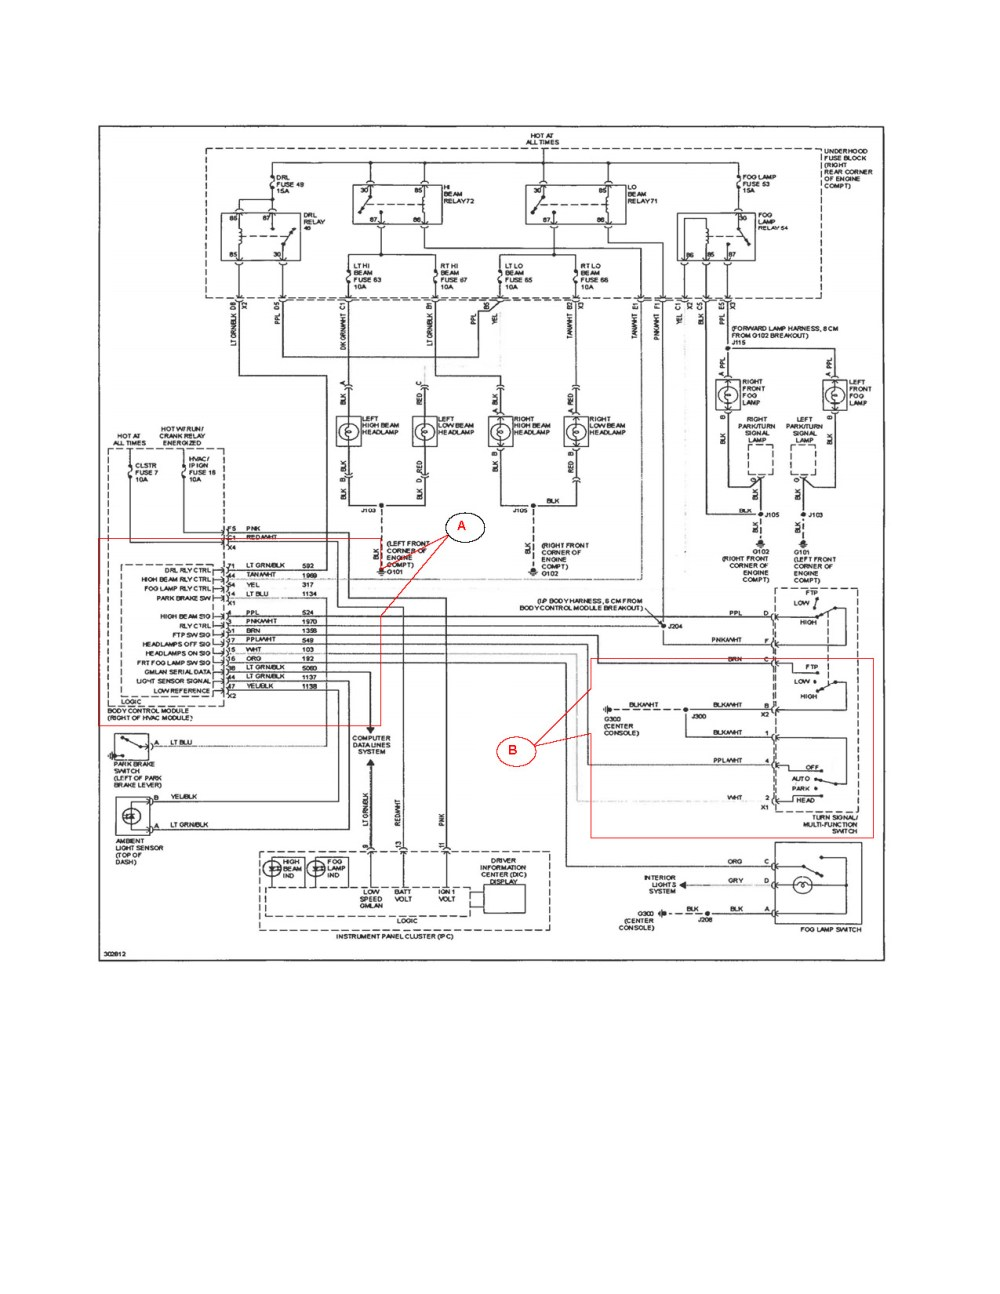 medium resolution of 2009 saturn sky fuse diagram schematic diagrams rh ogmconsulting co 2001 saturn fuse diagram saturn sl2